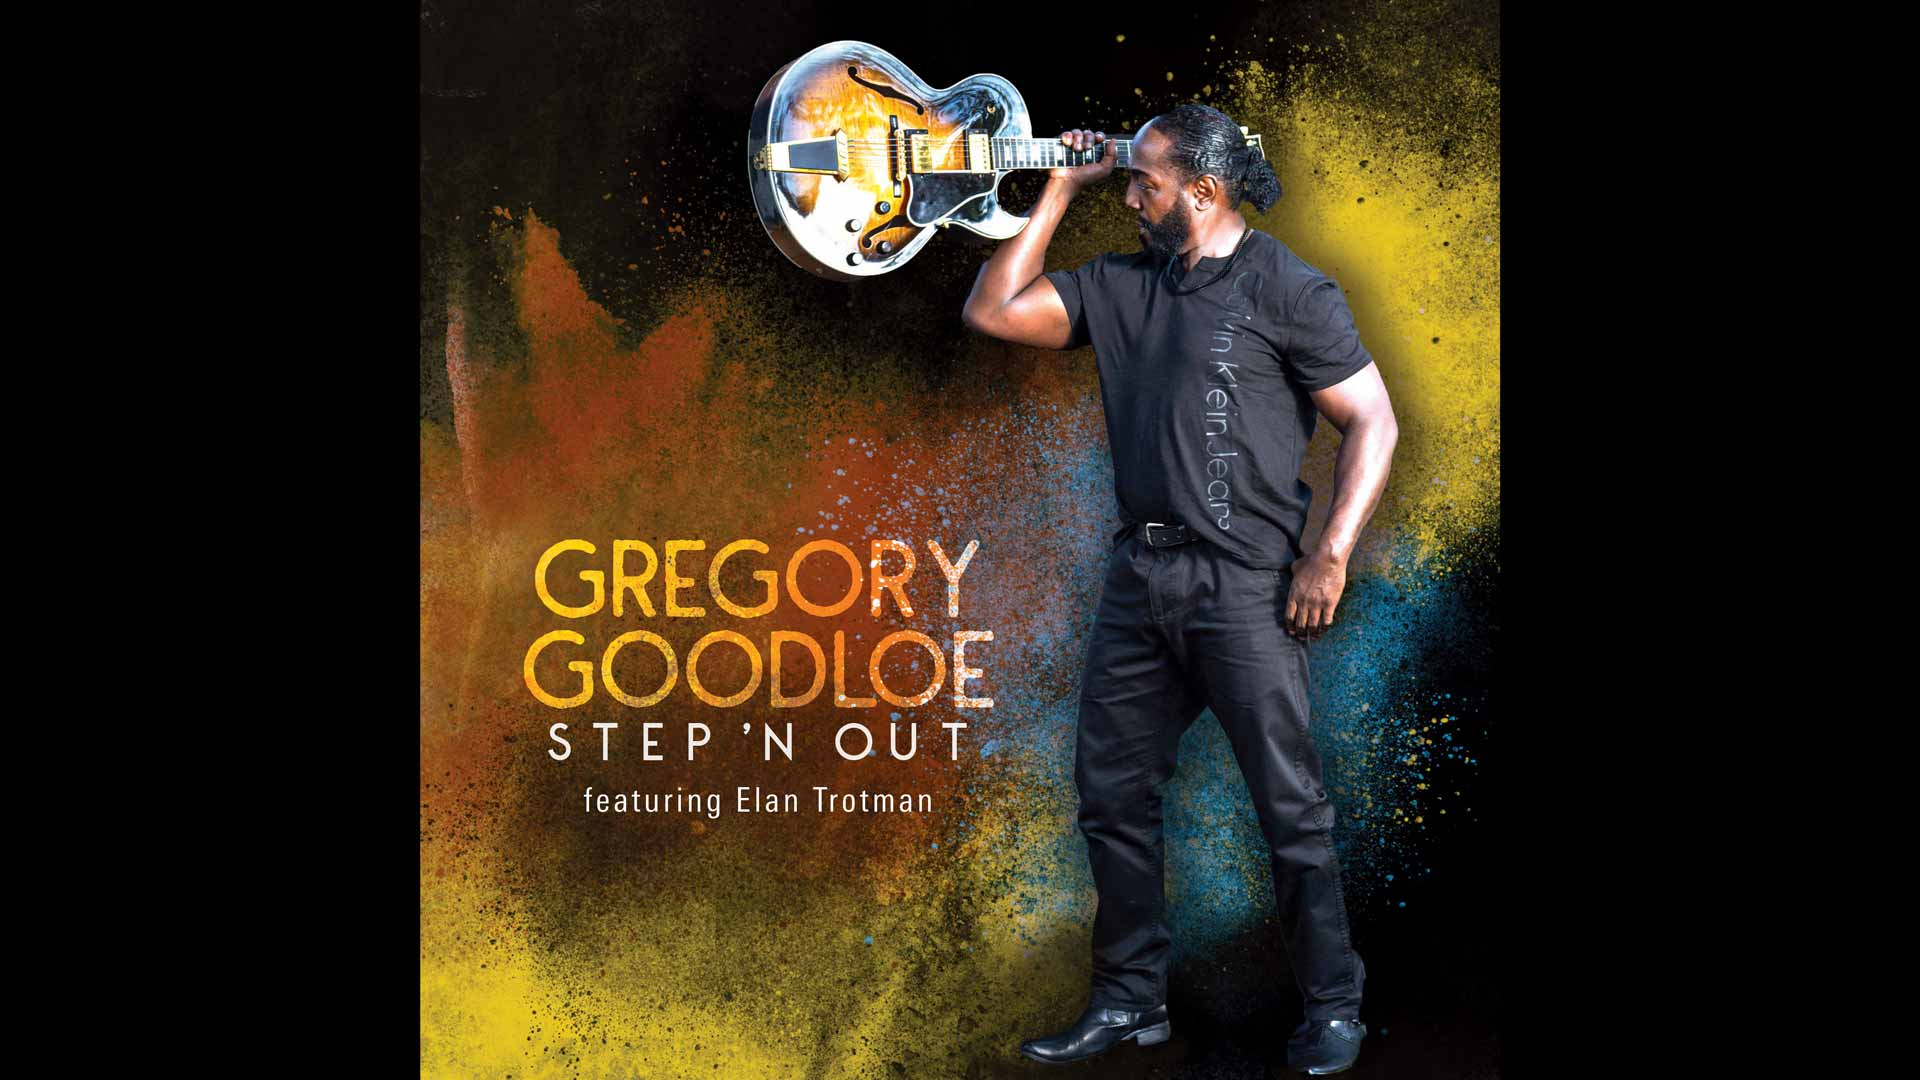 Music video for Jazz guitarist Gregory Goodloe featuring studio and outdoor recording at Memorial park in Colorado Springs